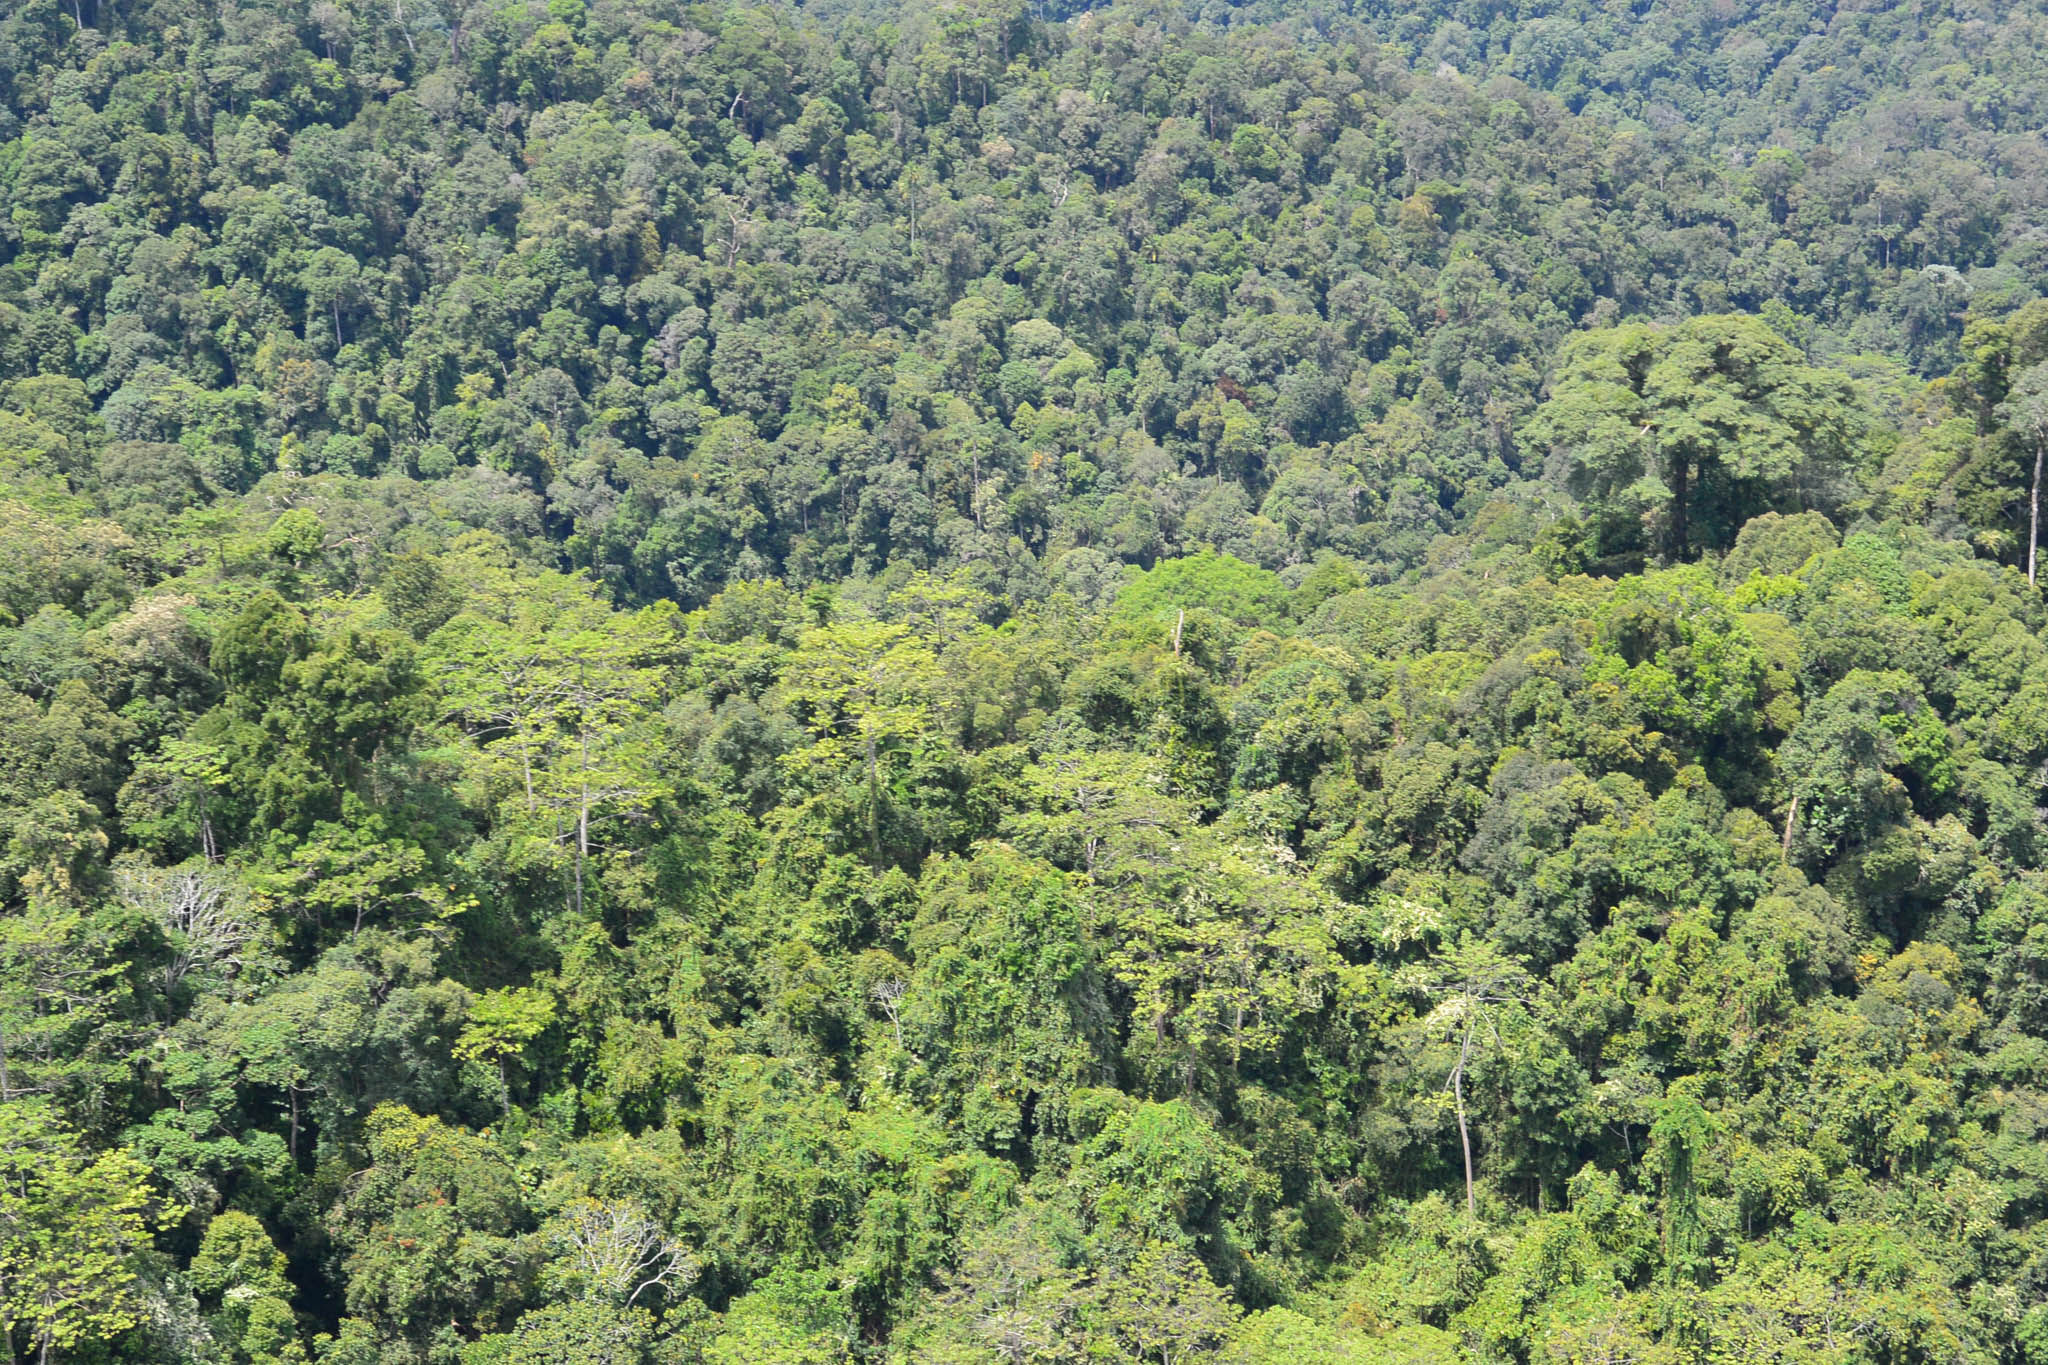 Sabah holds about 1.65 million hectares of intact forest, about the size of the U.S. state of Hawaii. © WWF-Malaysia/STCP